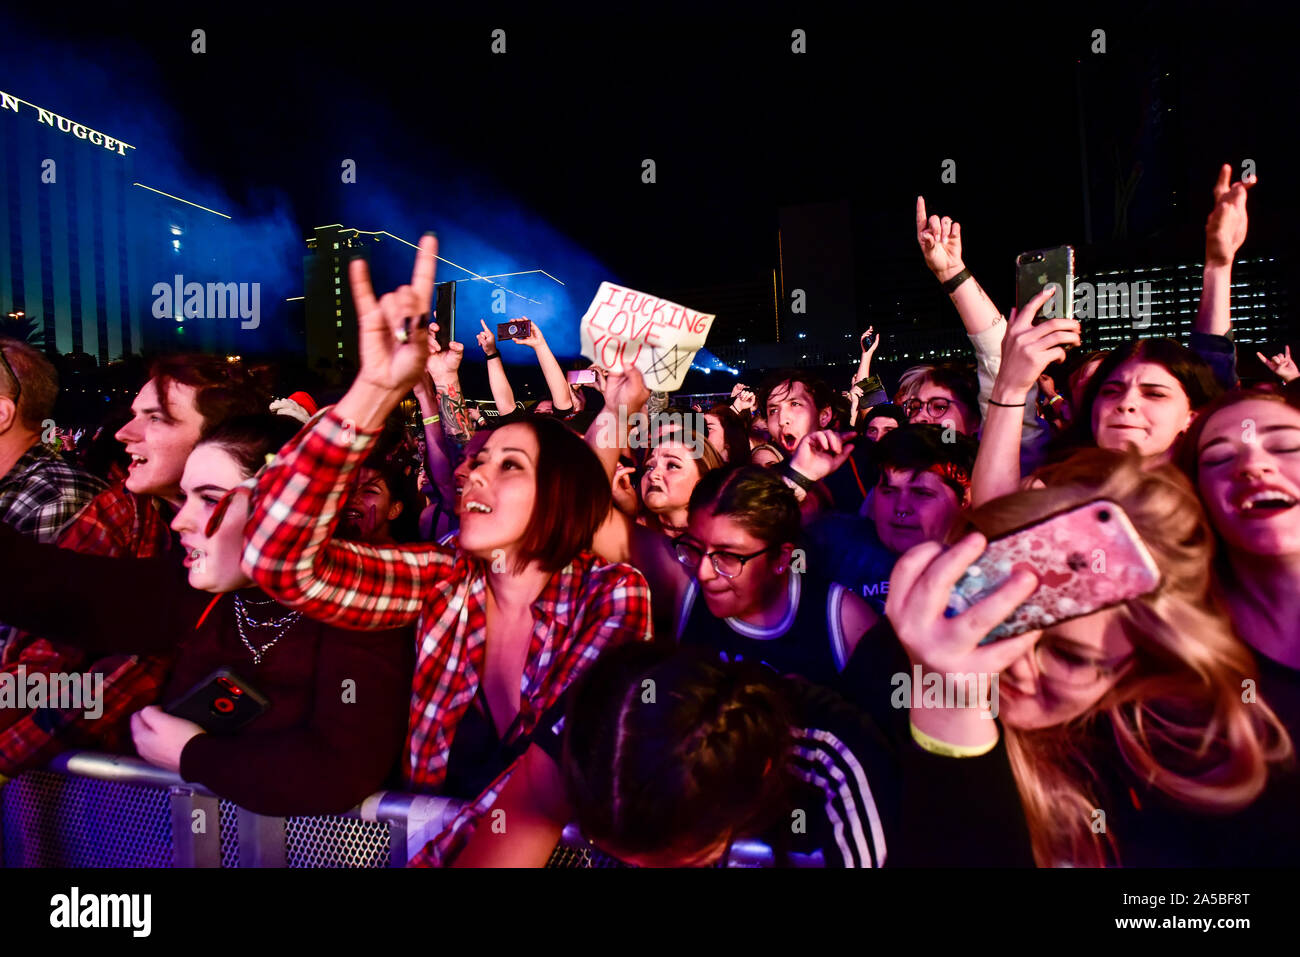 Las Vegas Nevada, October 18, 2019 – The crowd at the third annual Las Rageous heavy metal music festival held at the Downtown Las Vegas Events Center. Photo Credit: Ken Howard Images Stock Photo